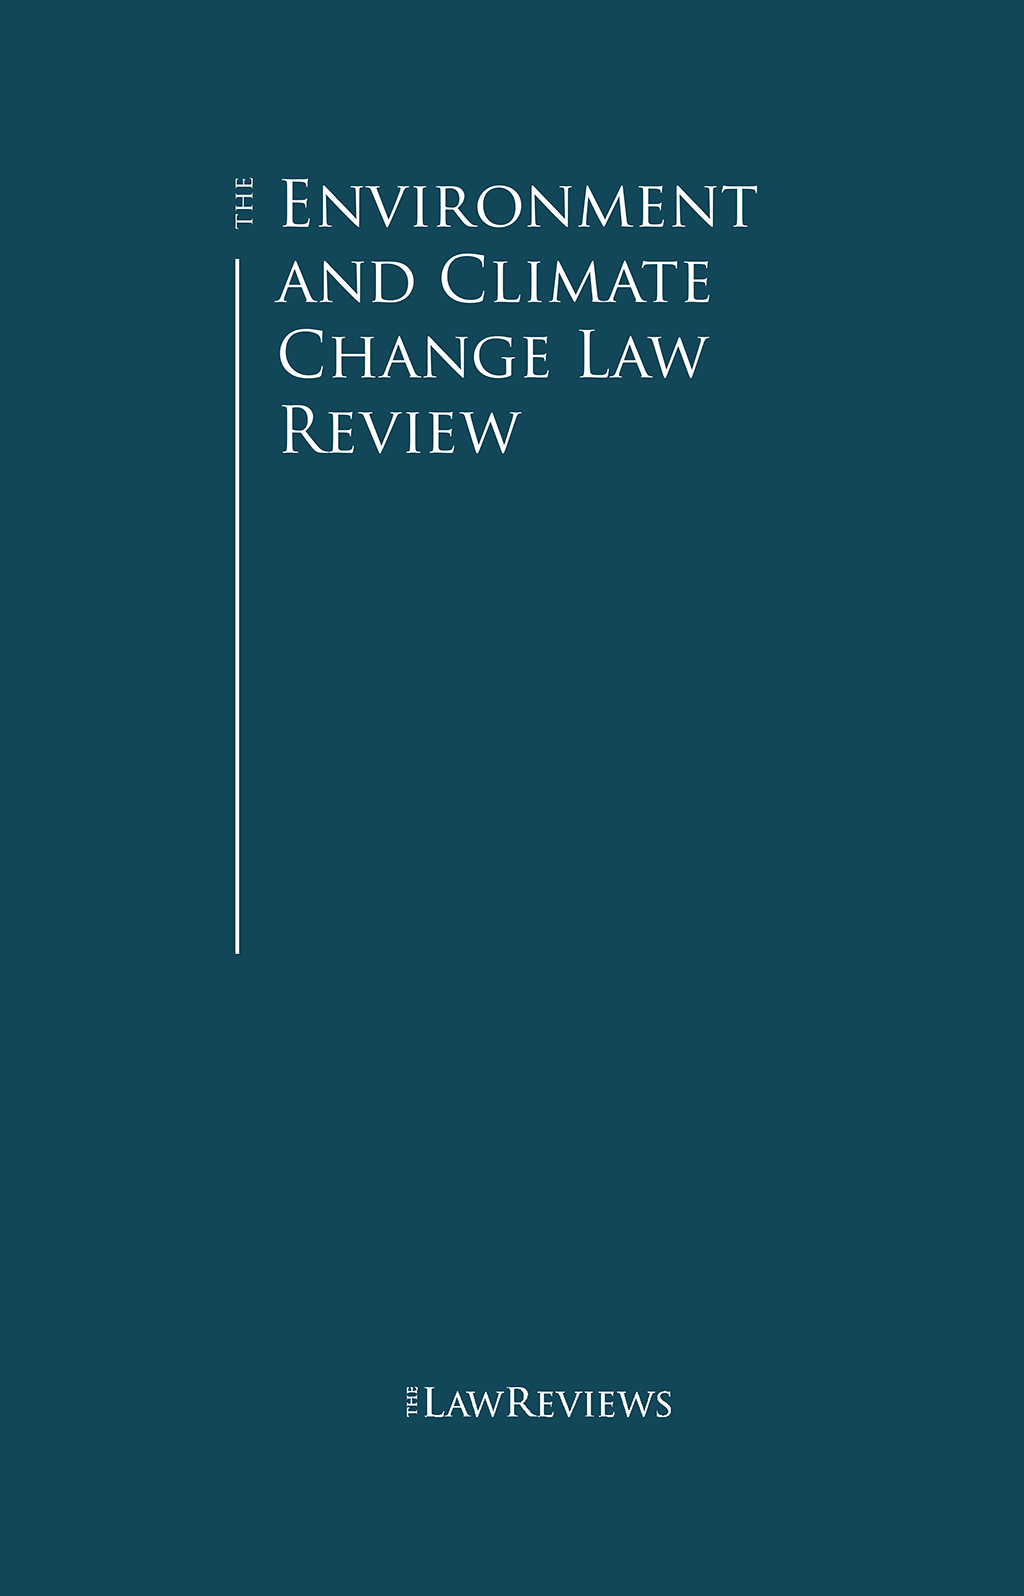 The Environment and Climate Change Law Review